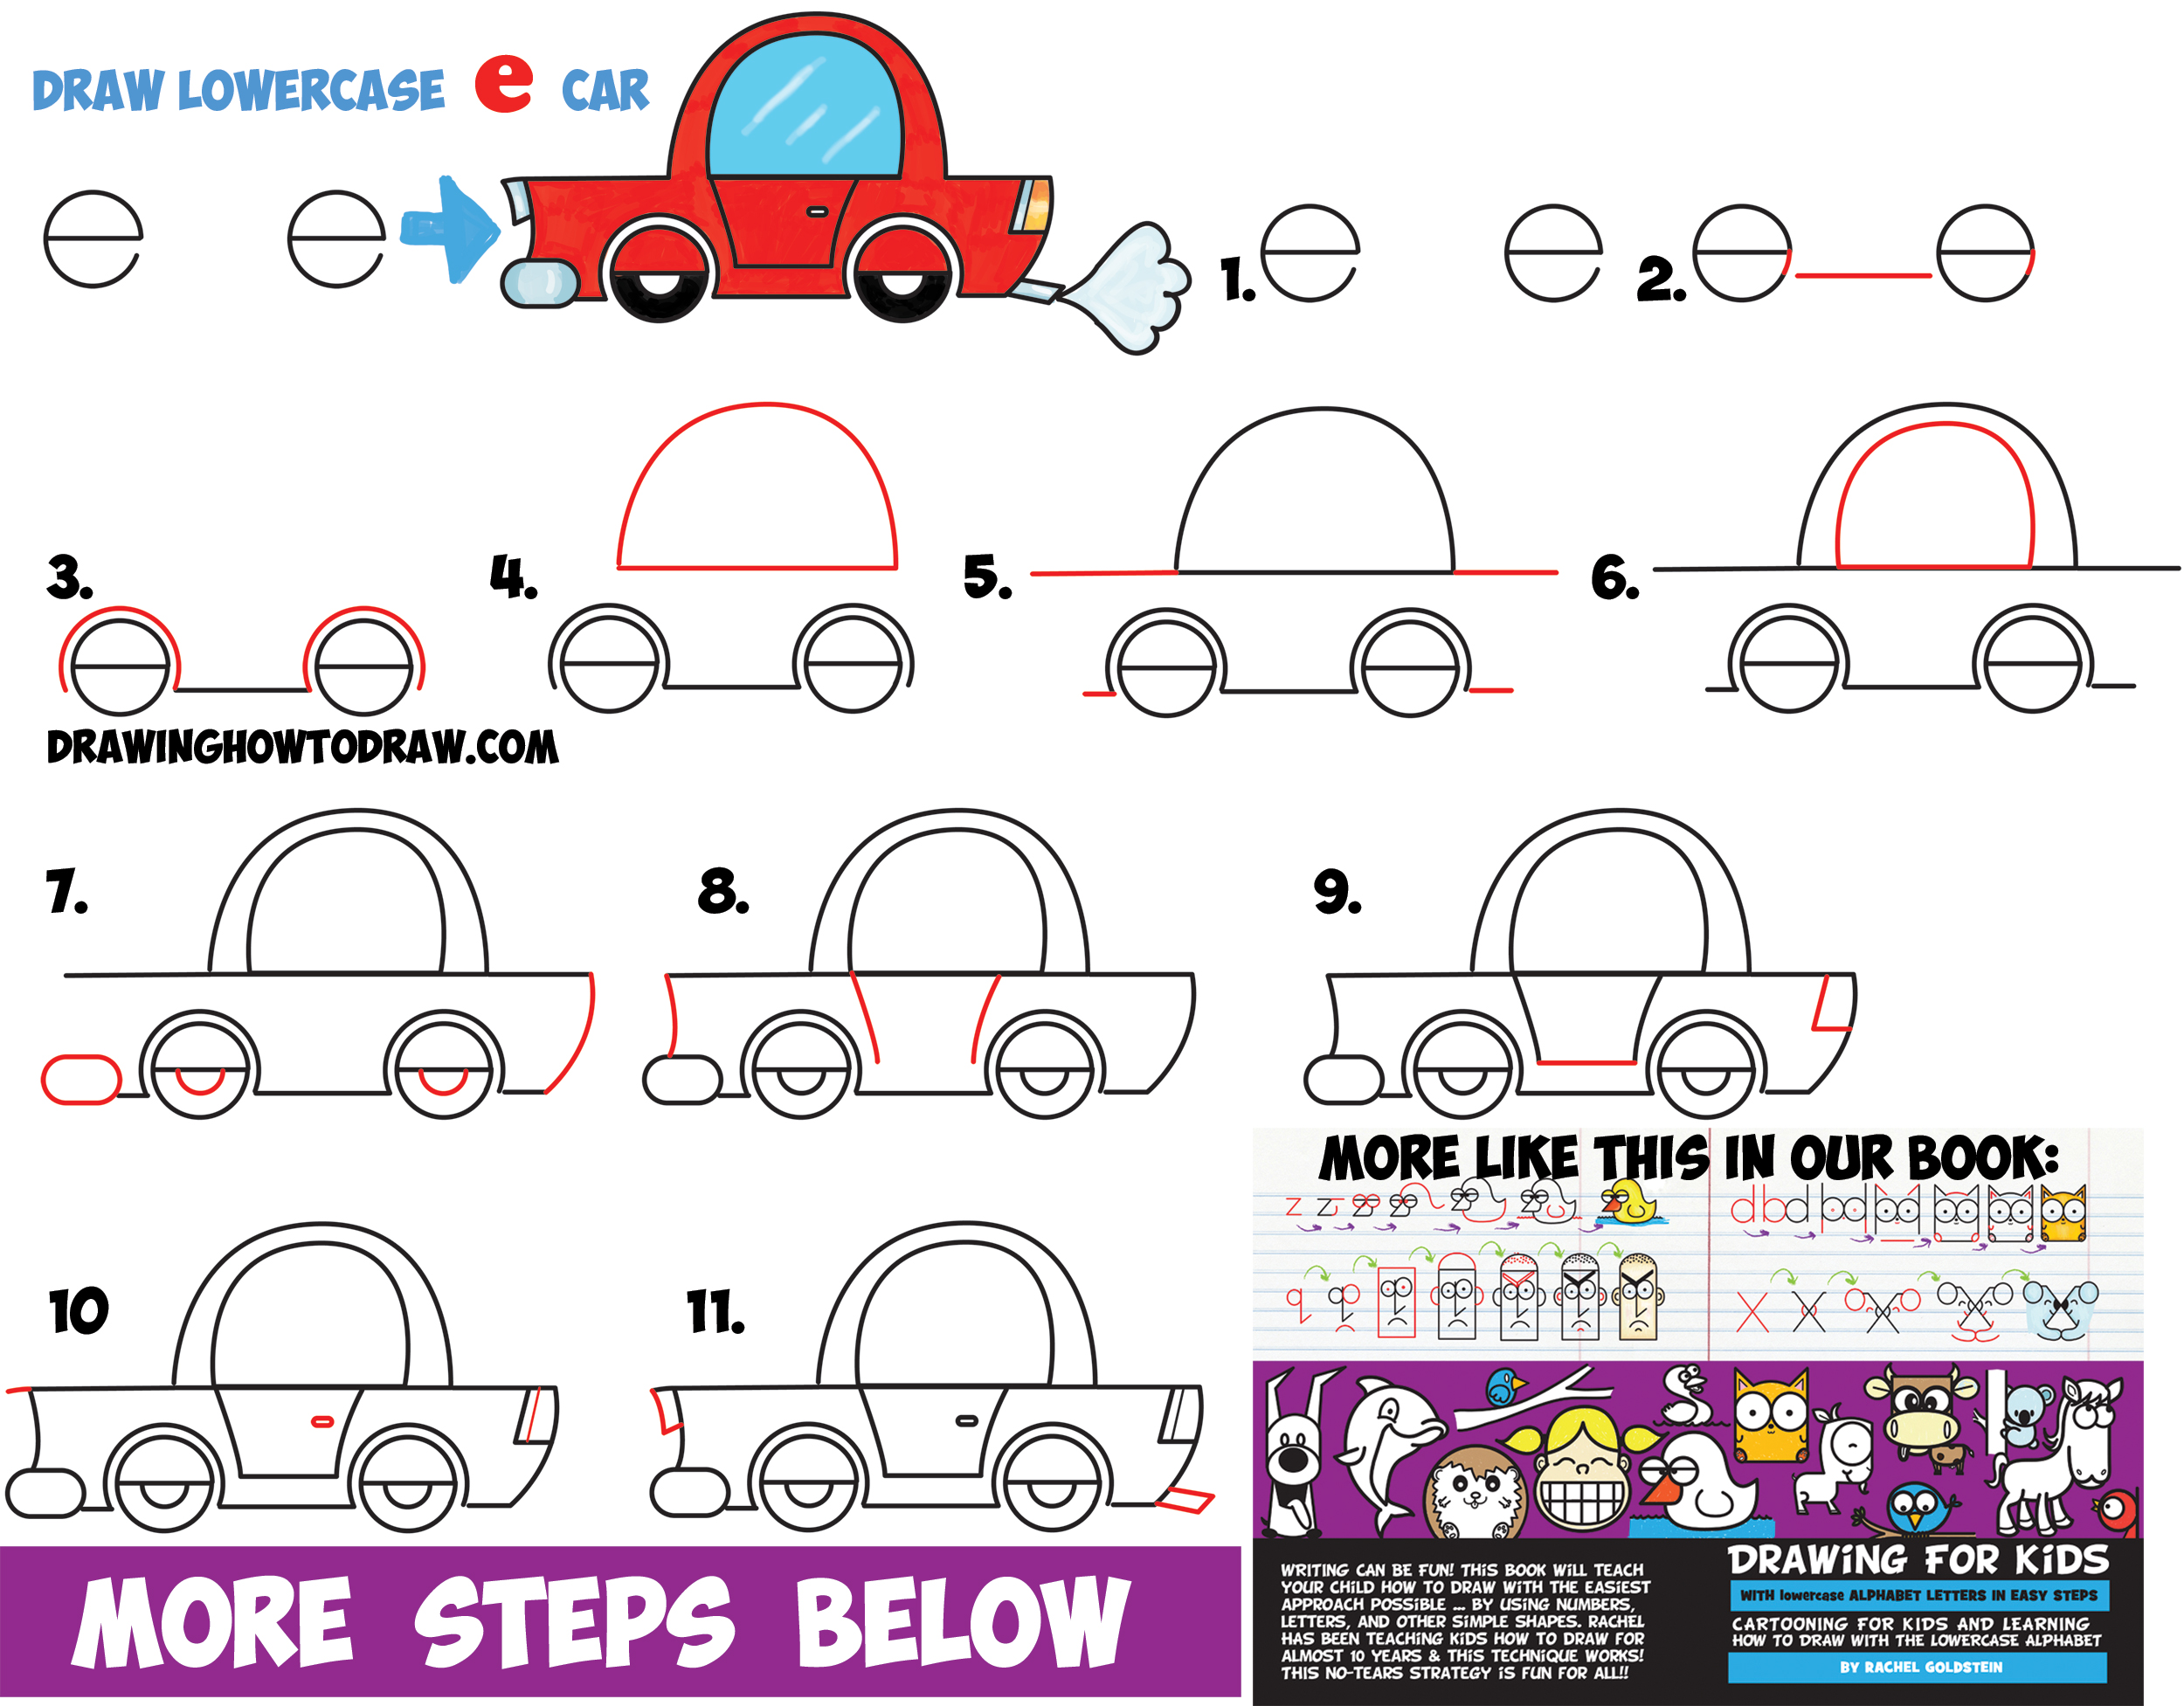 2500x1953 How To Draw A Cartoon Car From Lowercase Letter E Shapes